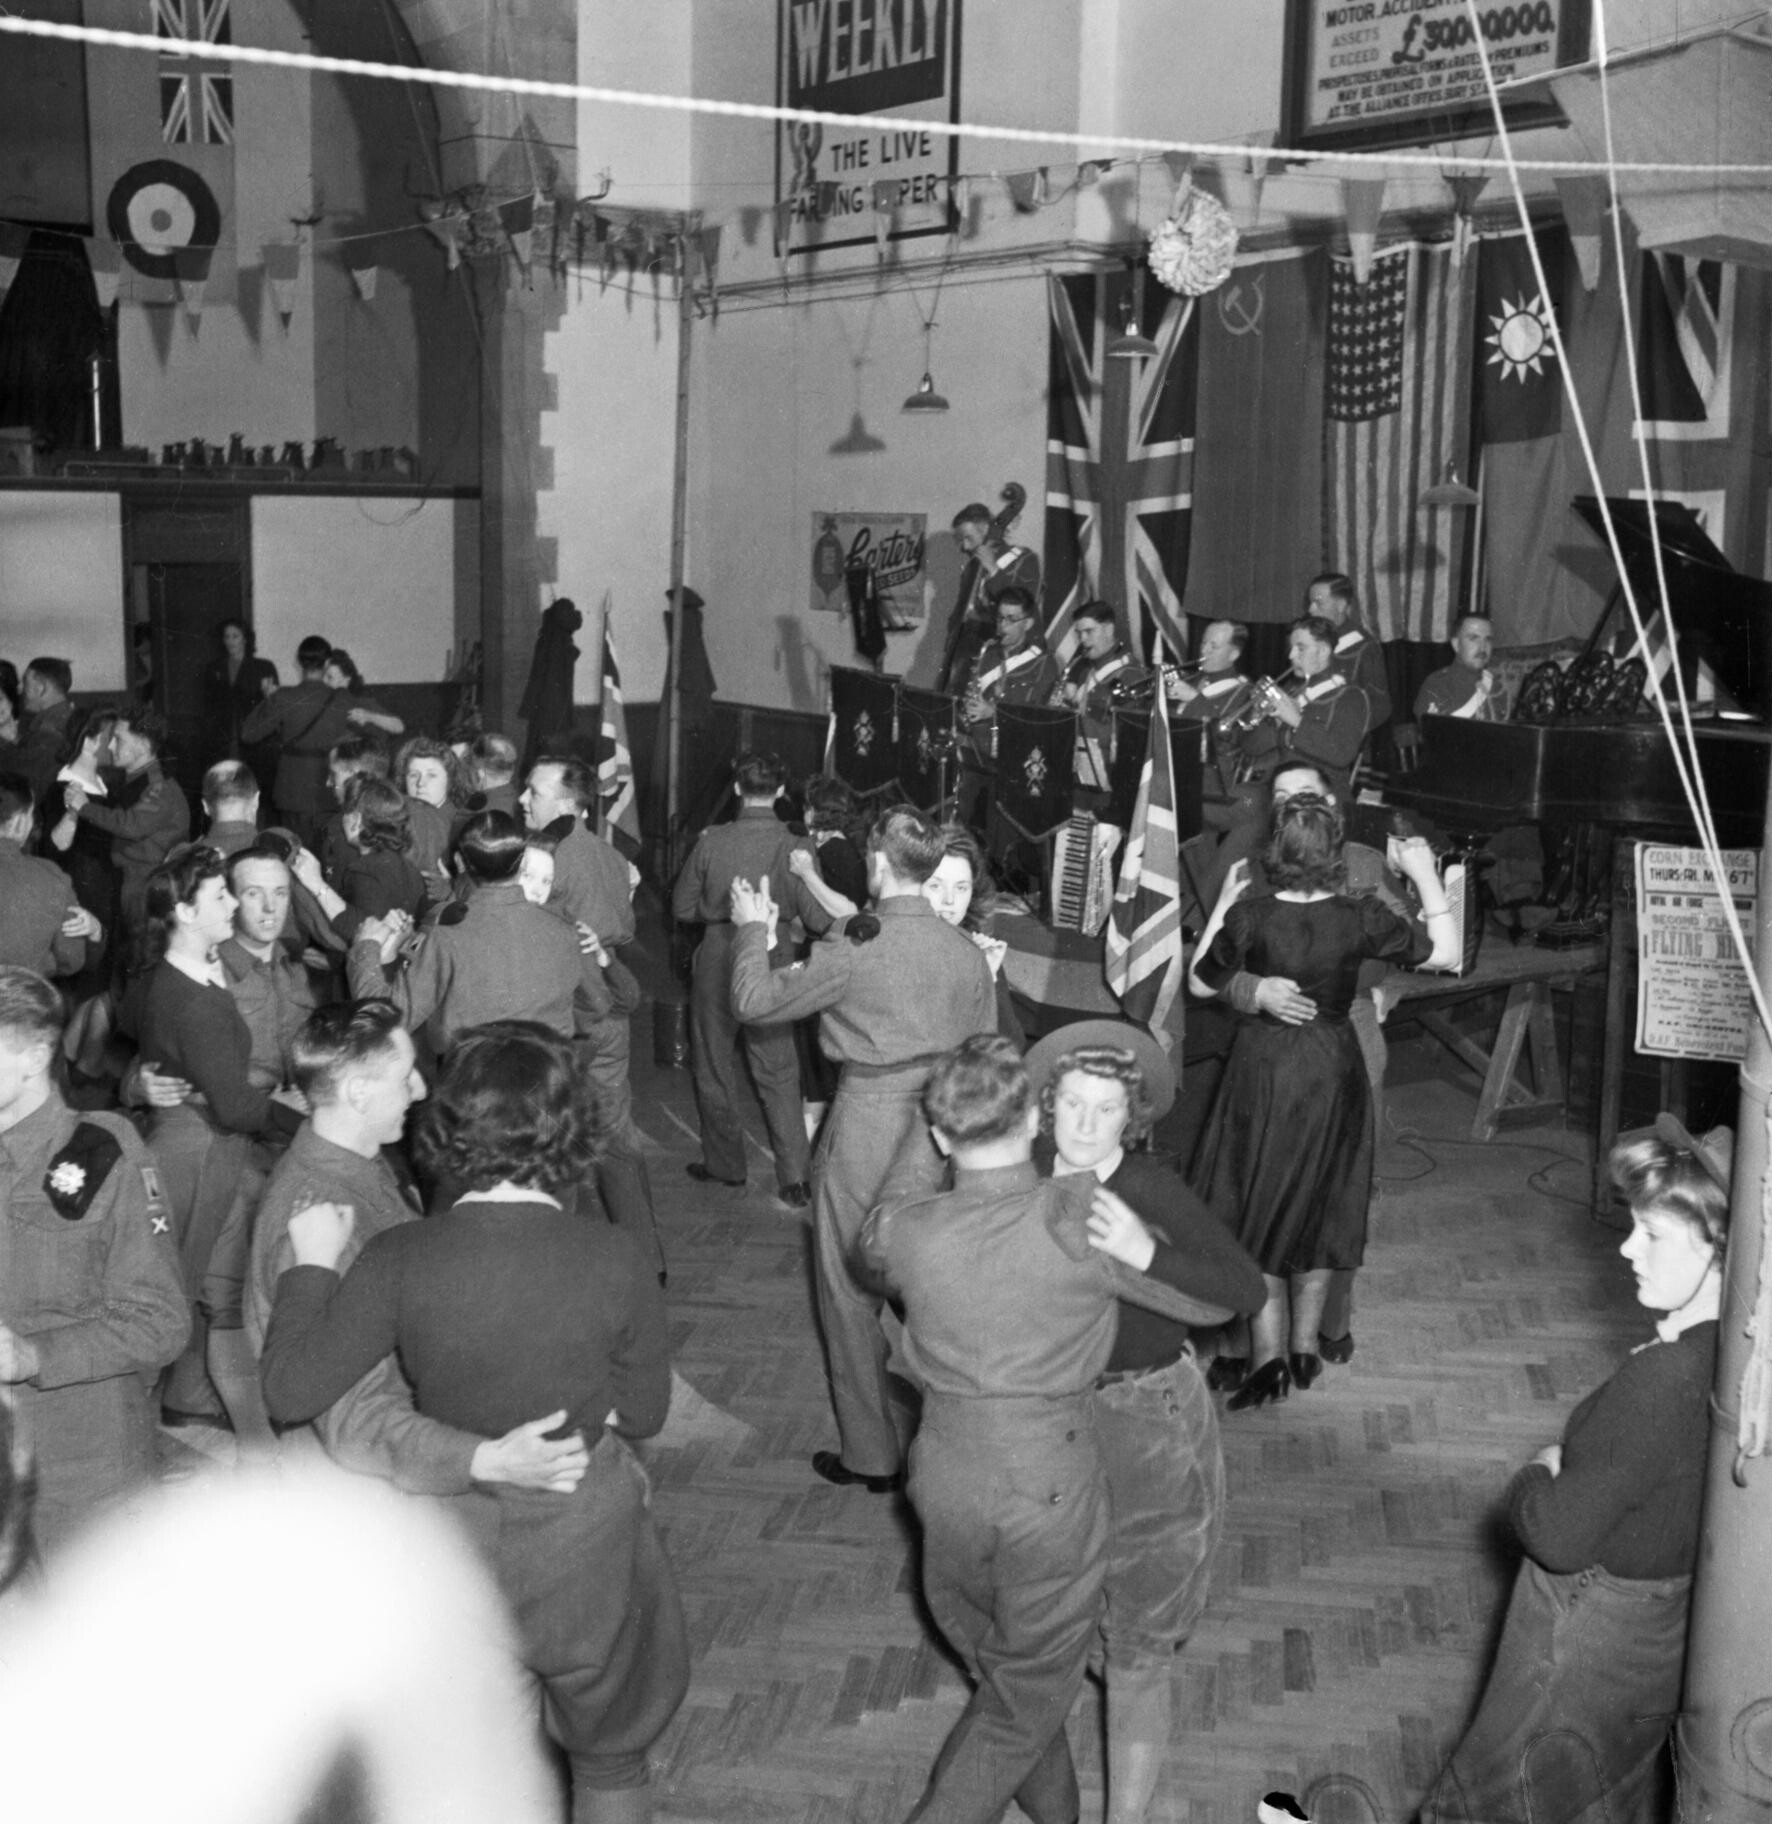 external image Land_Girls_and_British_soldiers_at_a_dance_in_a_large_hall,_near_the_Women's_Land_Army_forestry_training_camp_at_Culford,_Suffolk,_May_1943._D14123.jpg